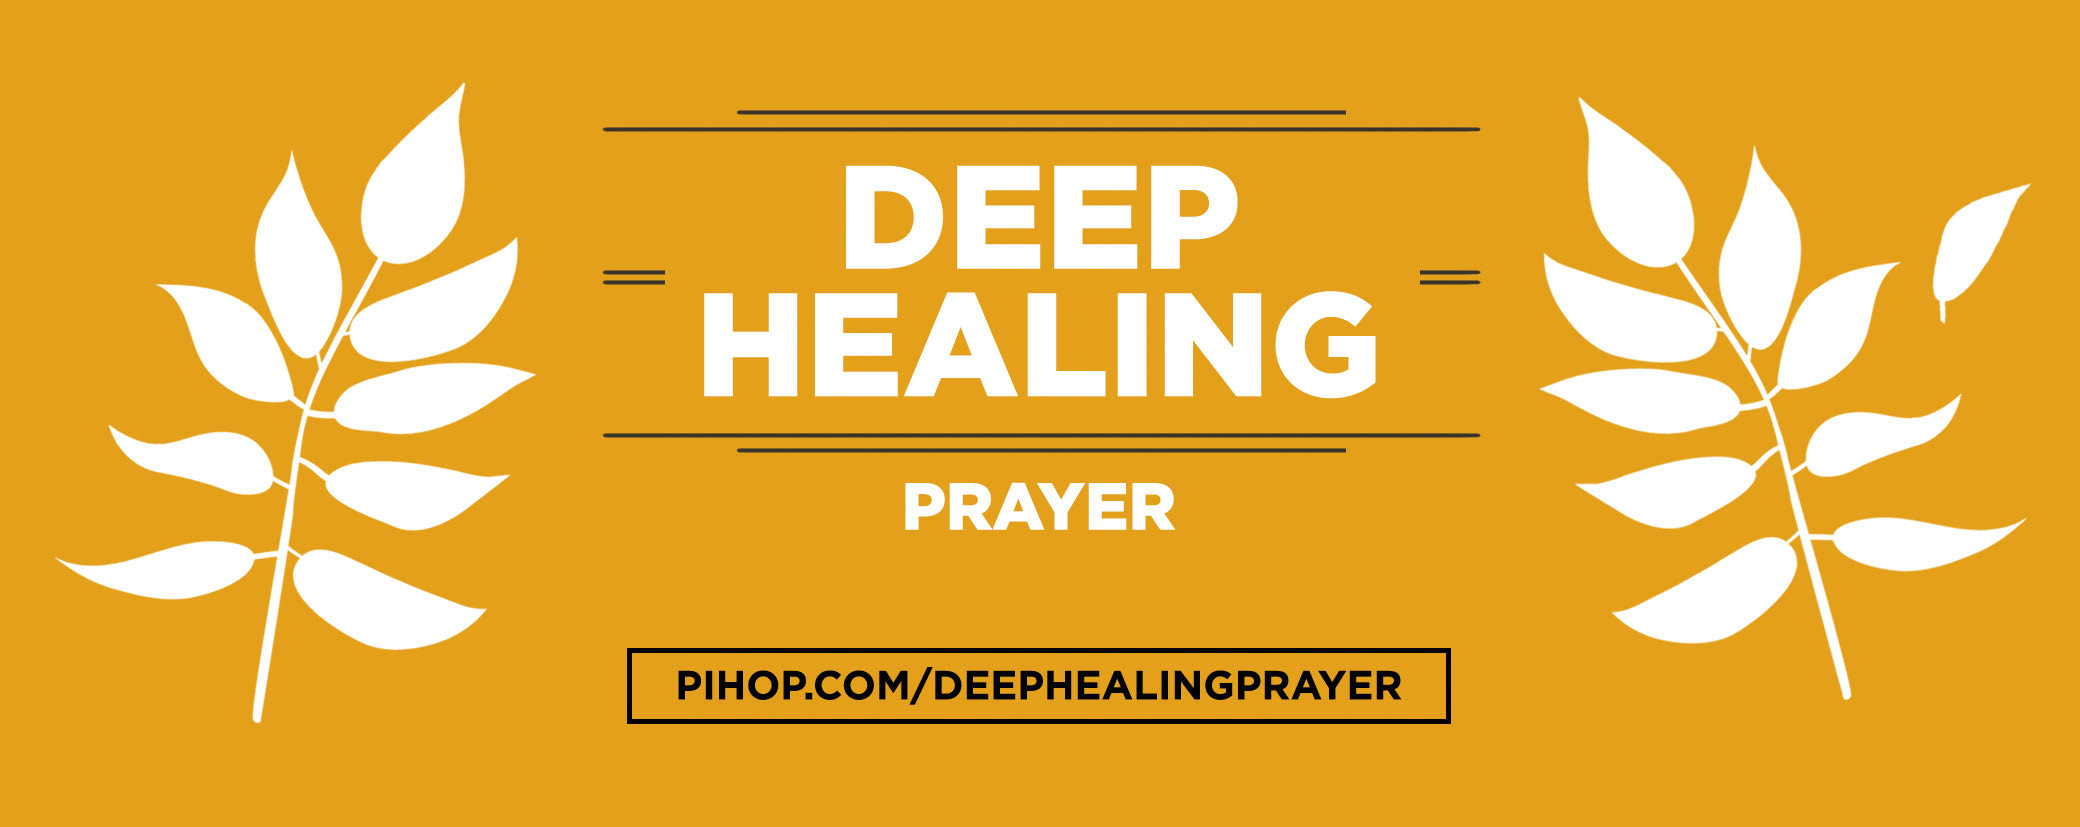 Deep Healing Prayer — PIHOP